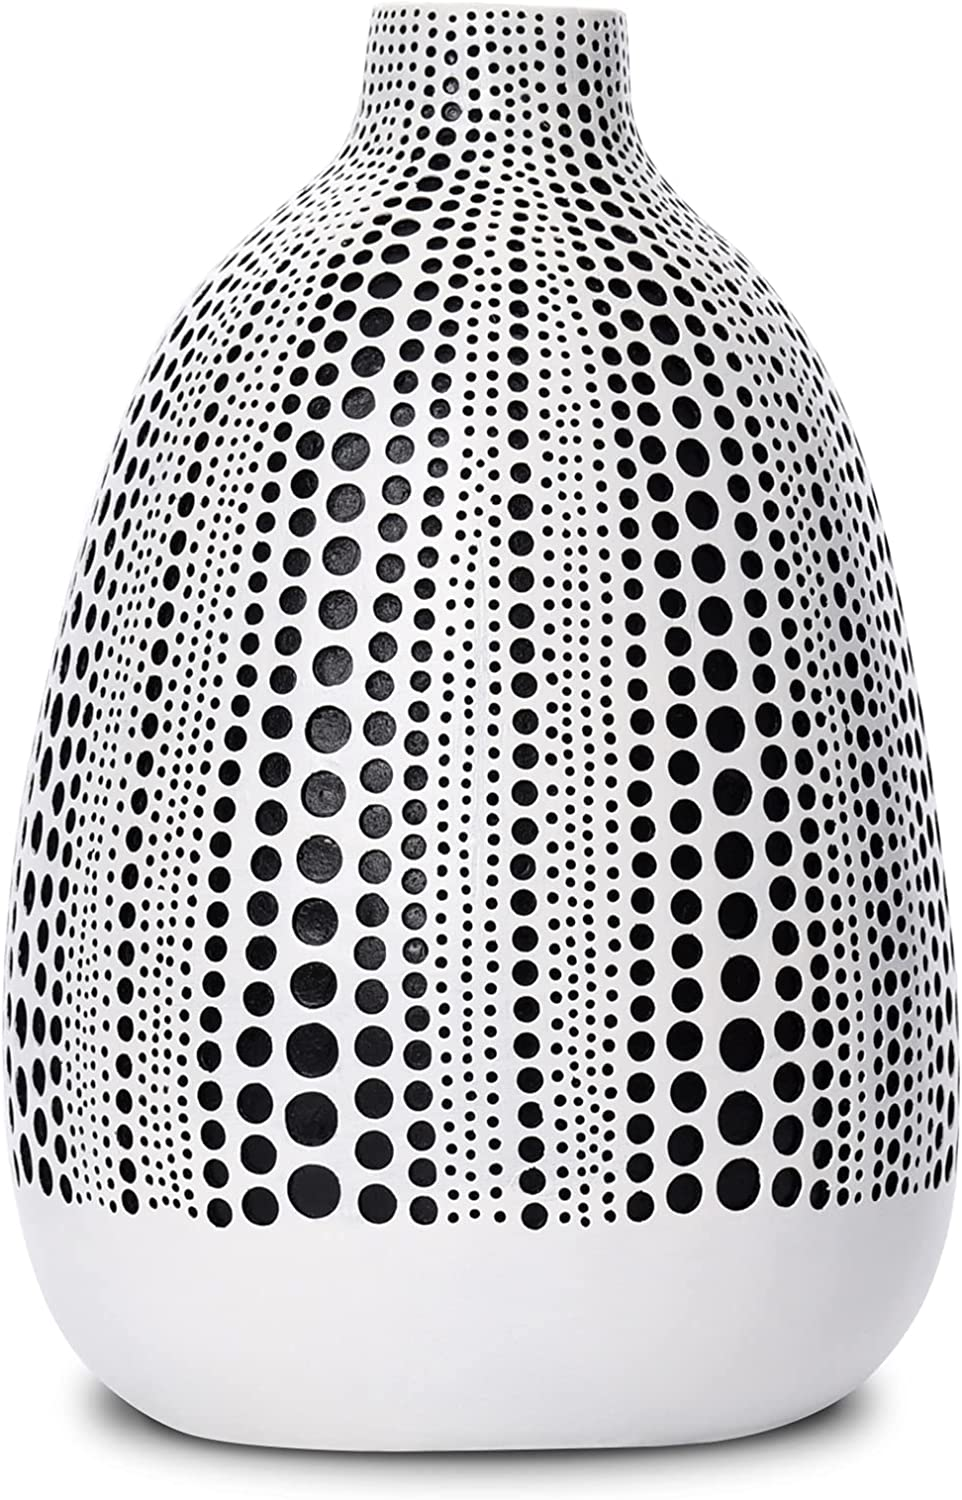 Quoowiit Flower Vase, Decorative Vases Floral Vase for Centerpieces, Vase for Home Decor, Living Room, Office Table or Wedding, Modern Resin Vases with Black and White Dots-White Short